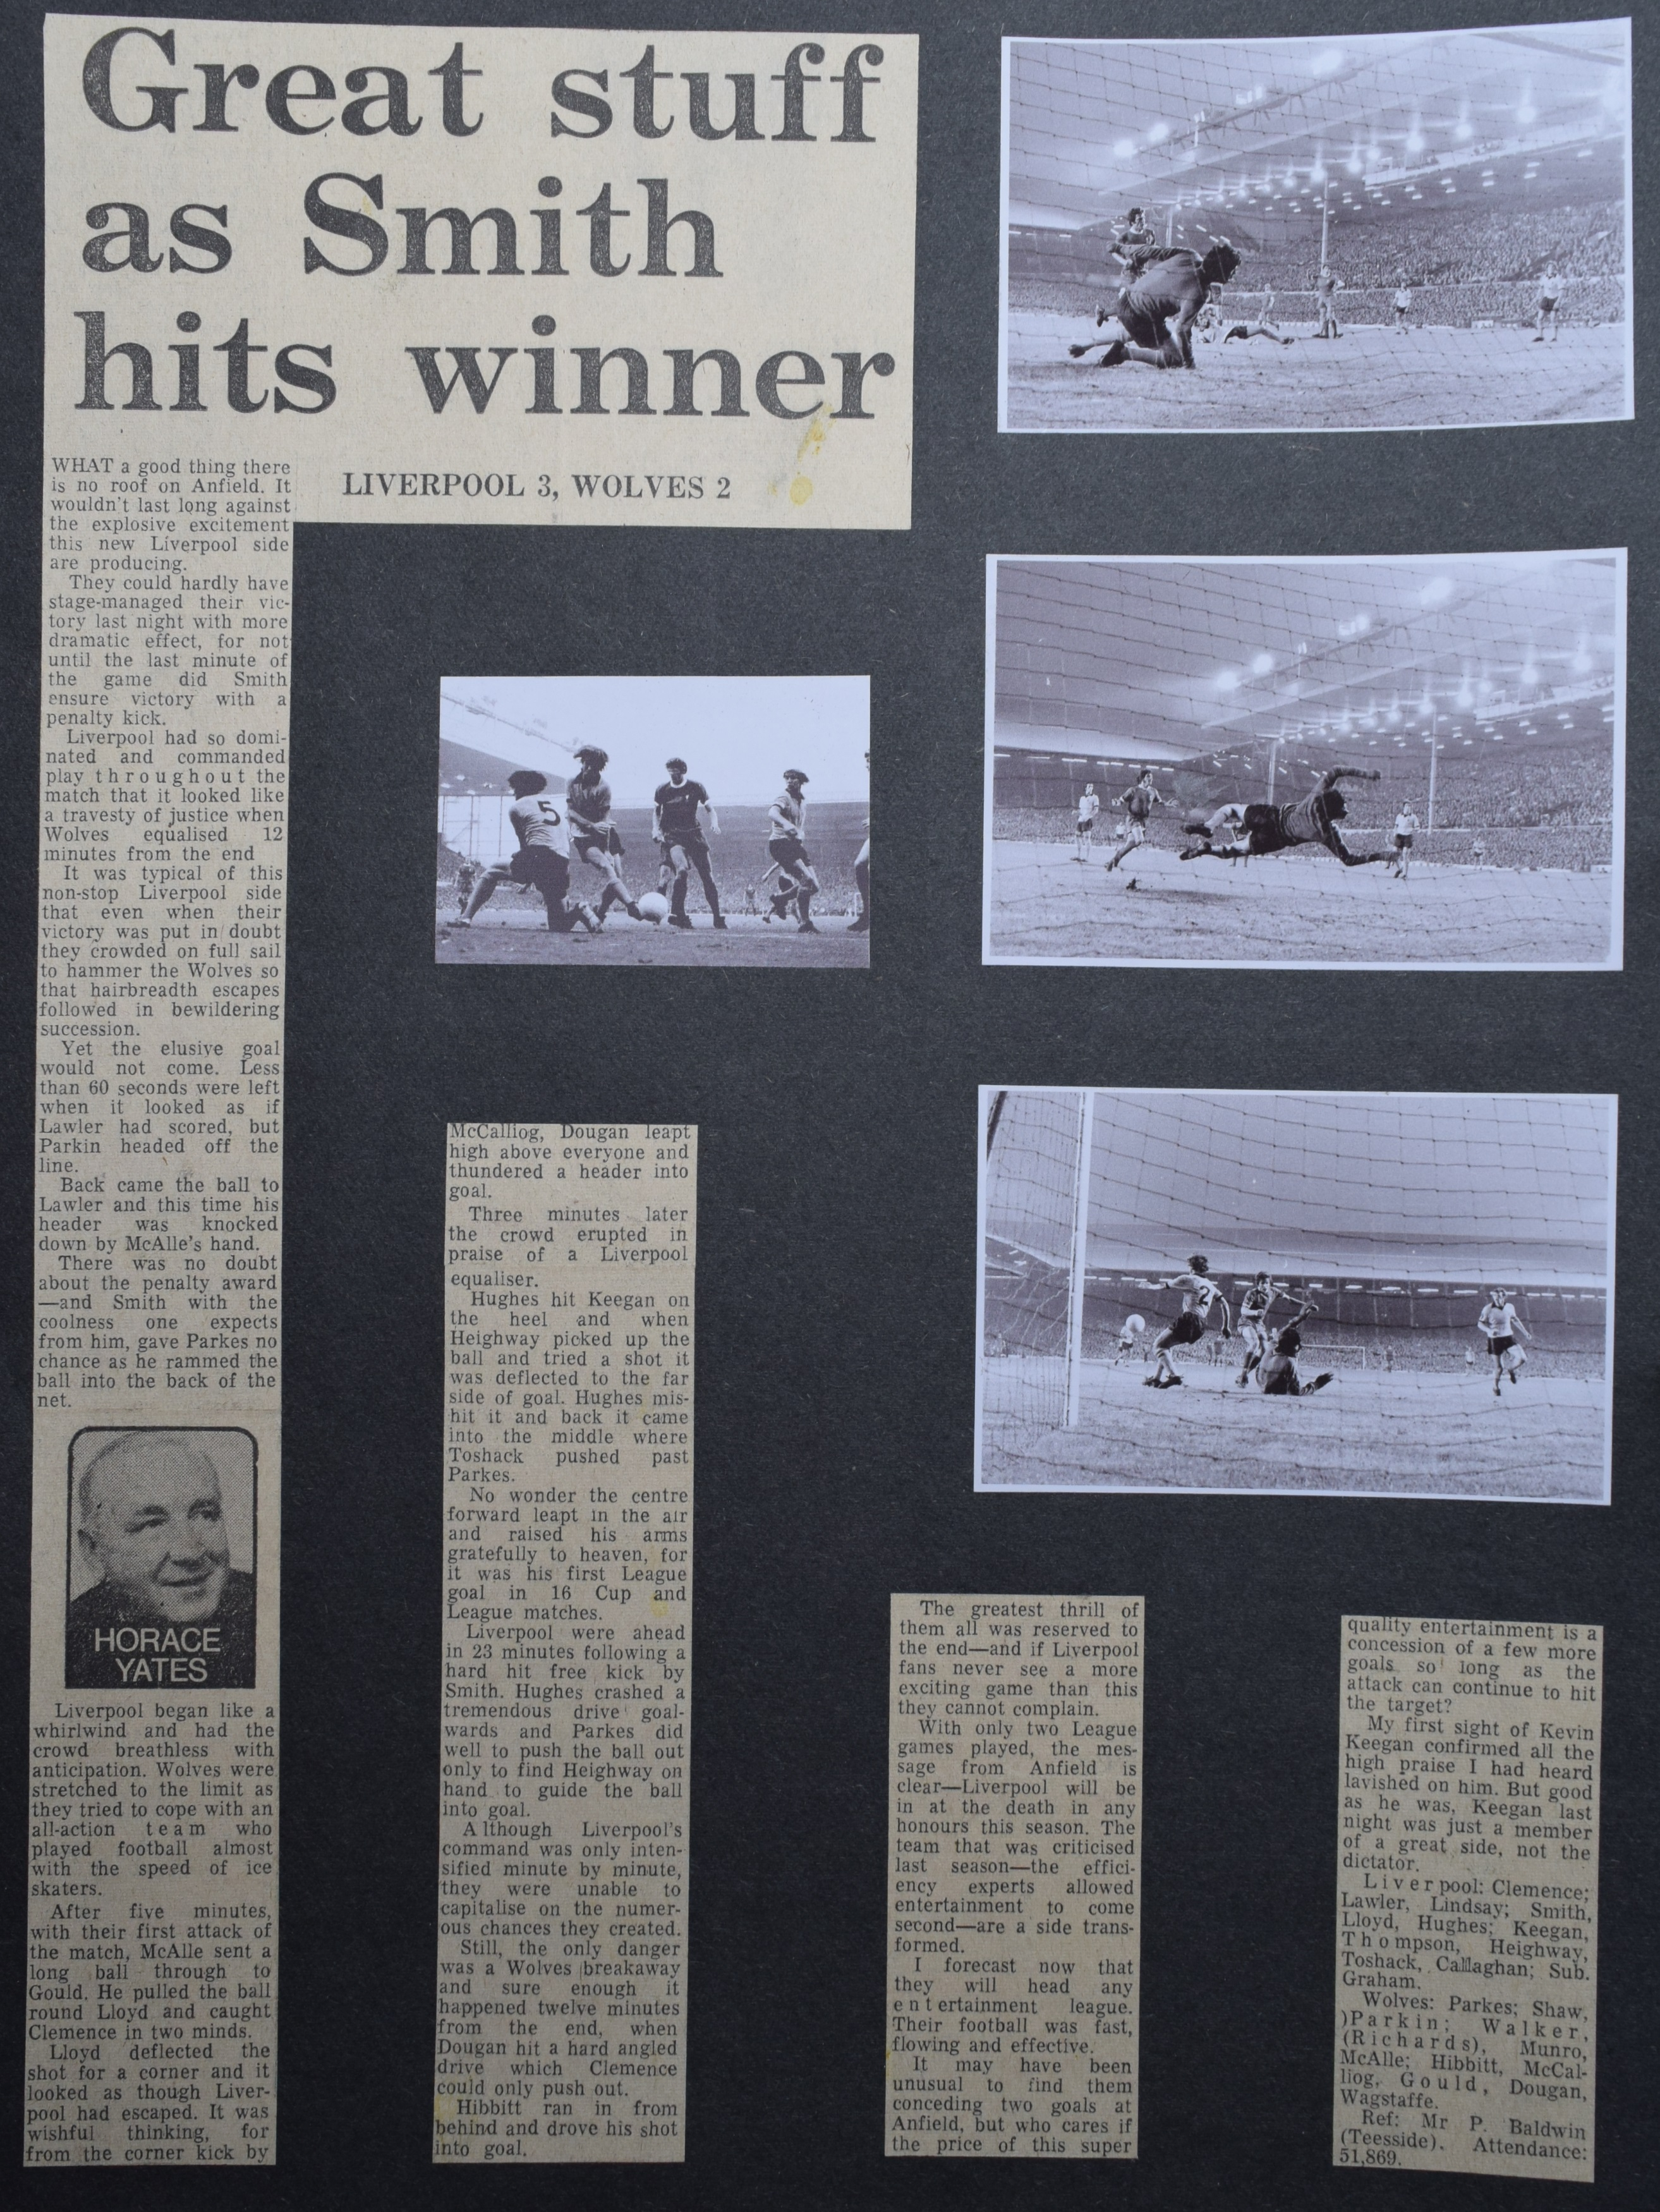 Great stuff as Smith hits winner! - 17 August 1971